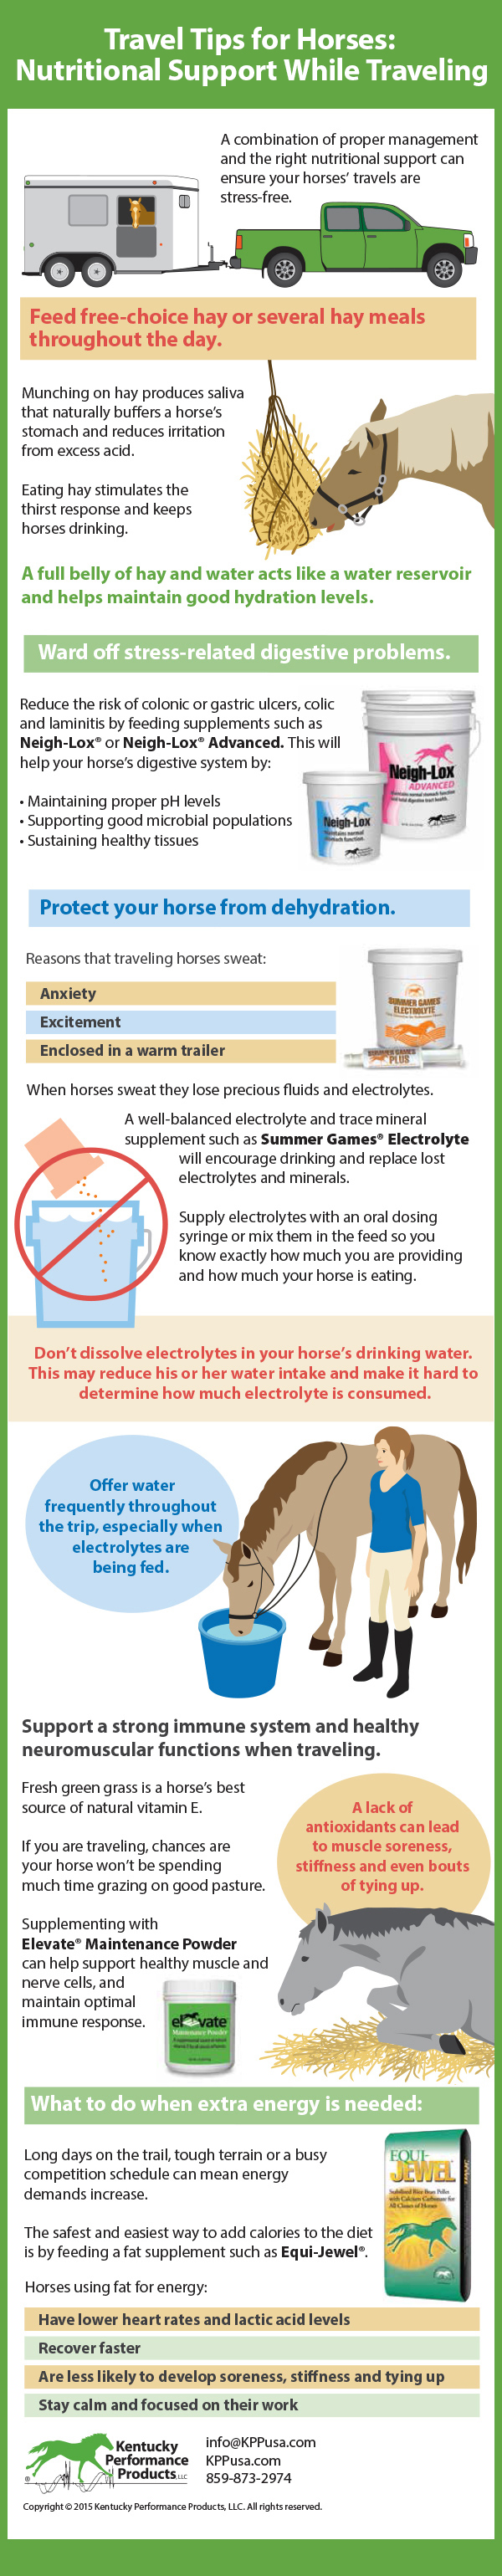 15-174-Travel-Tips-for-Horses-Part-2-Nutrional-Support-While-Traveling